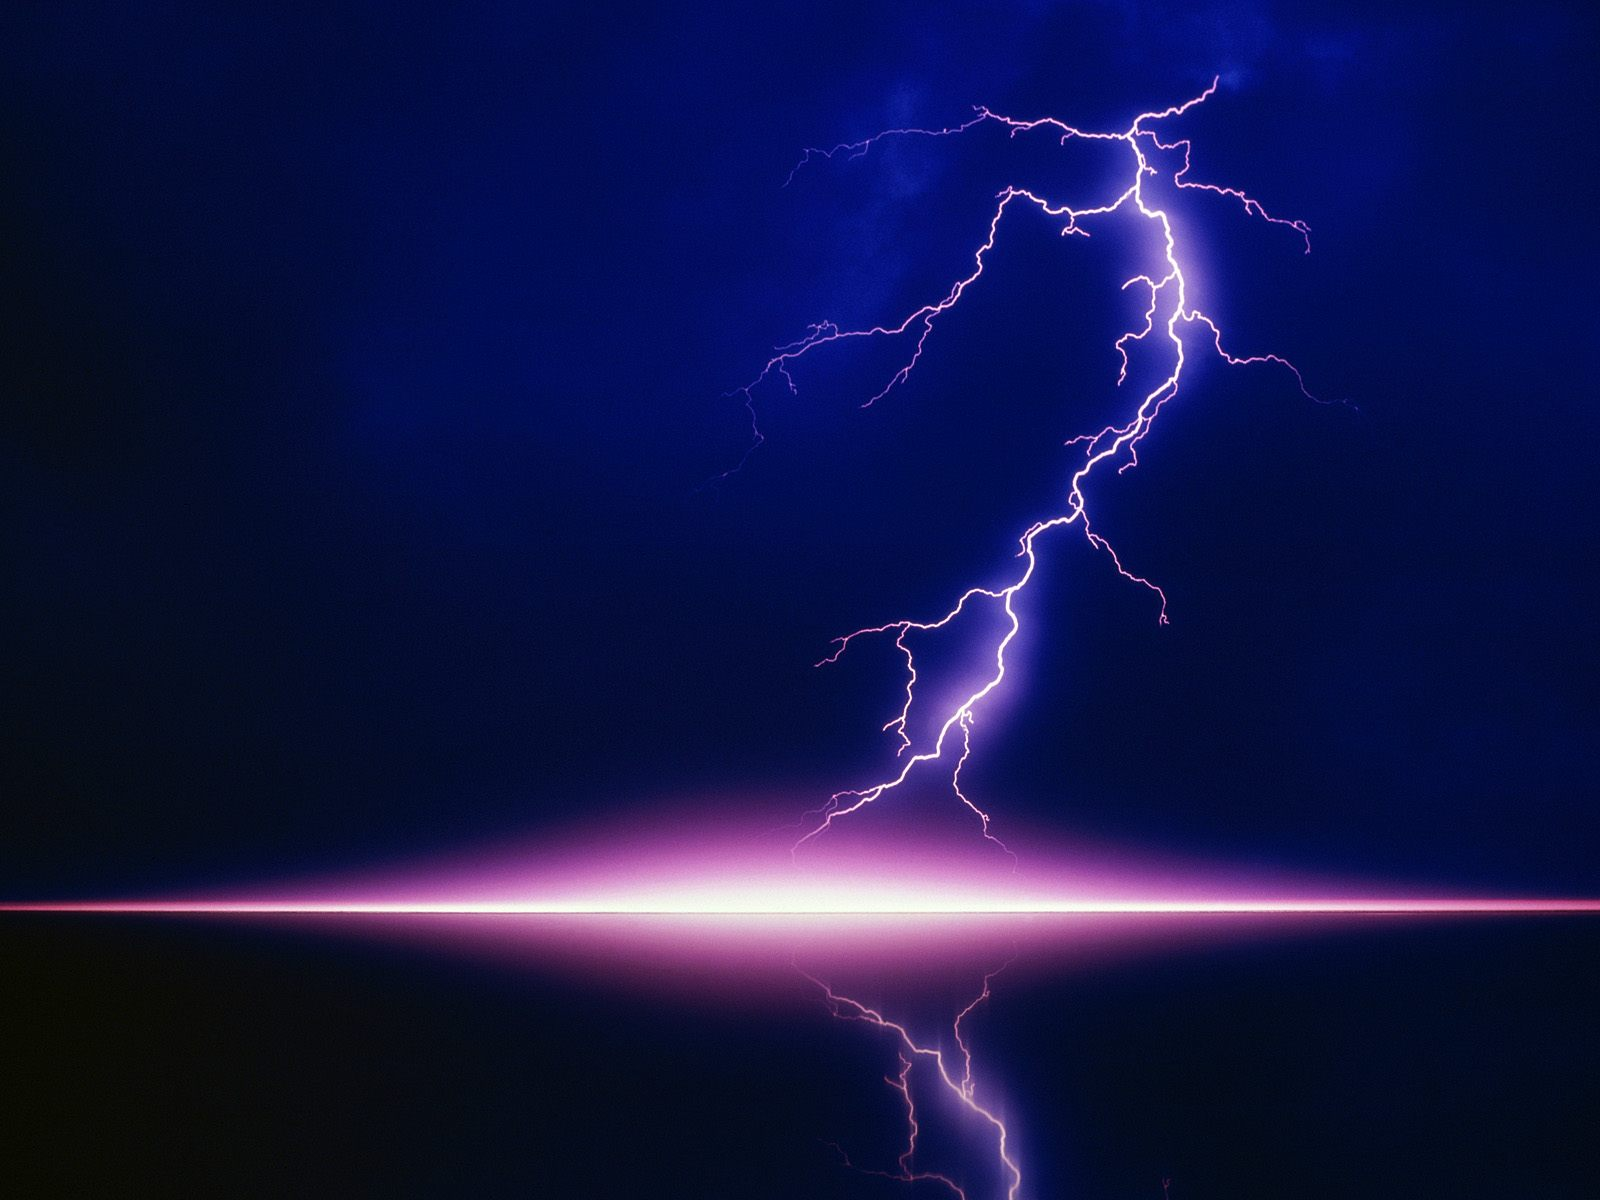 Wallpapers Lightning